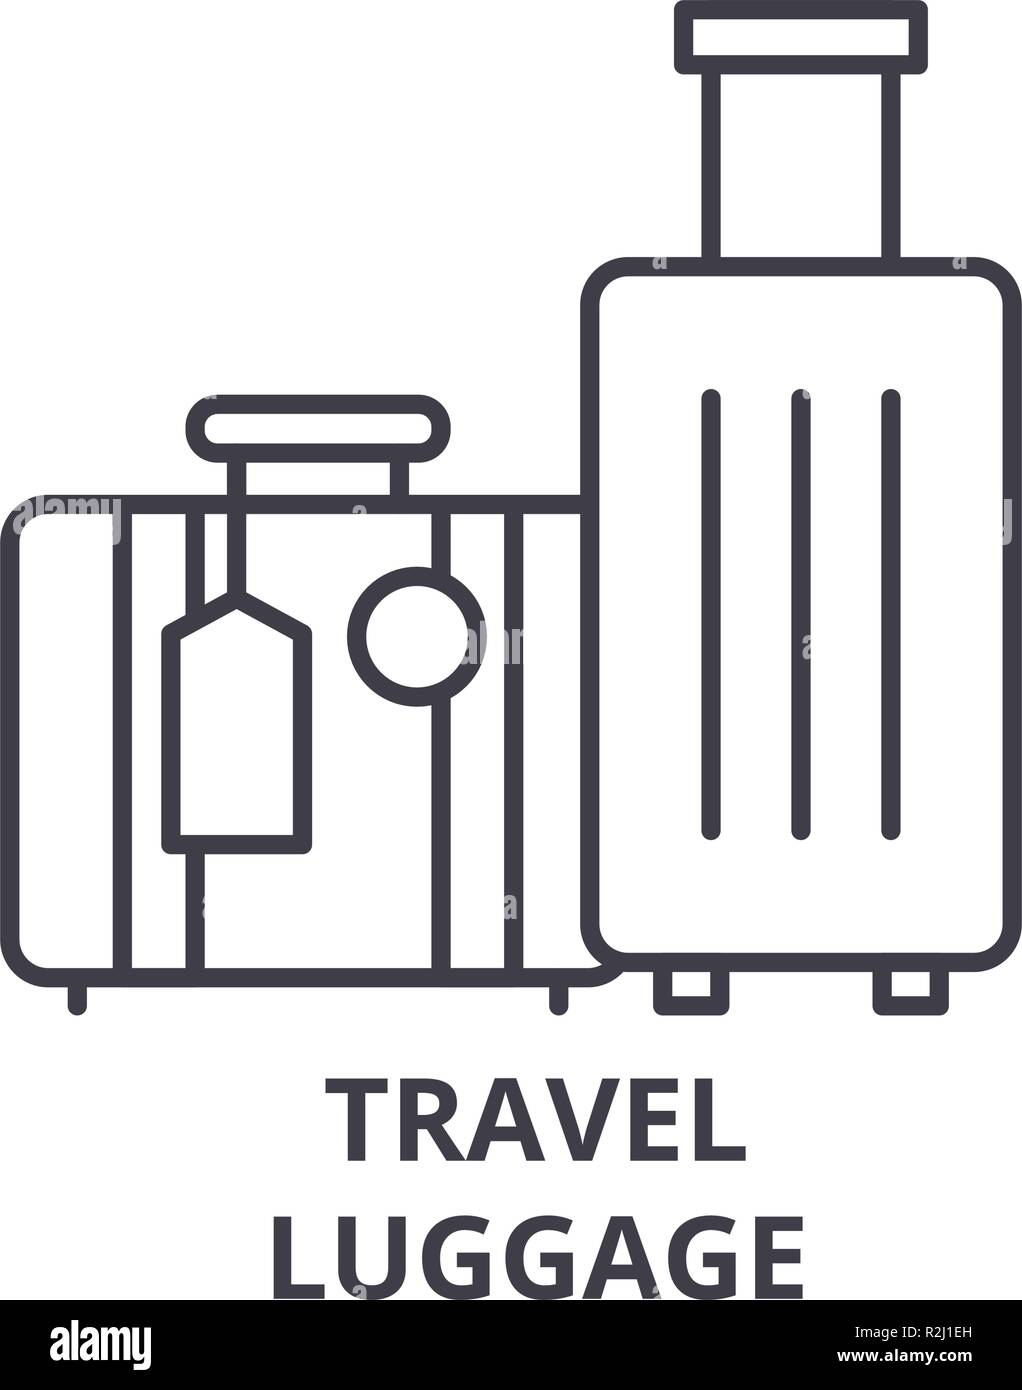 Travel luggage line icon concept. Travel luggage vector linear illustration, symbol, sign Stock Vector